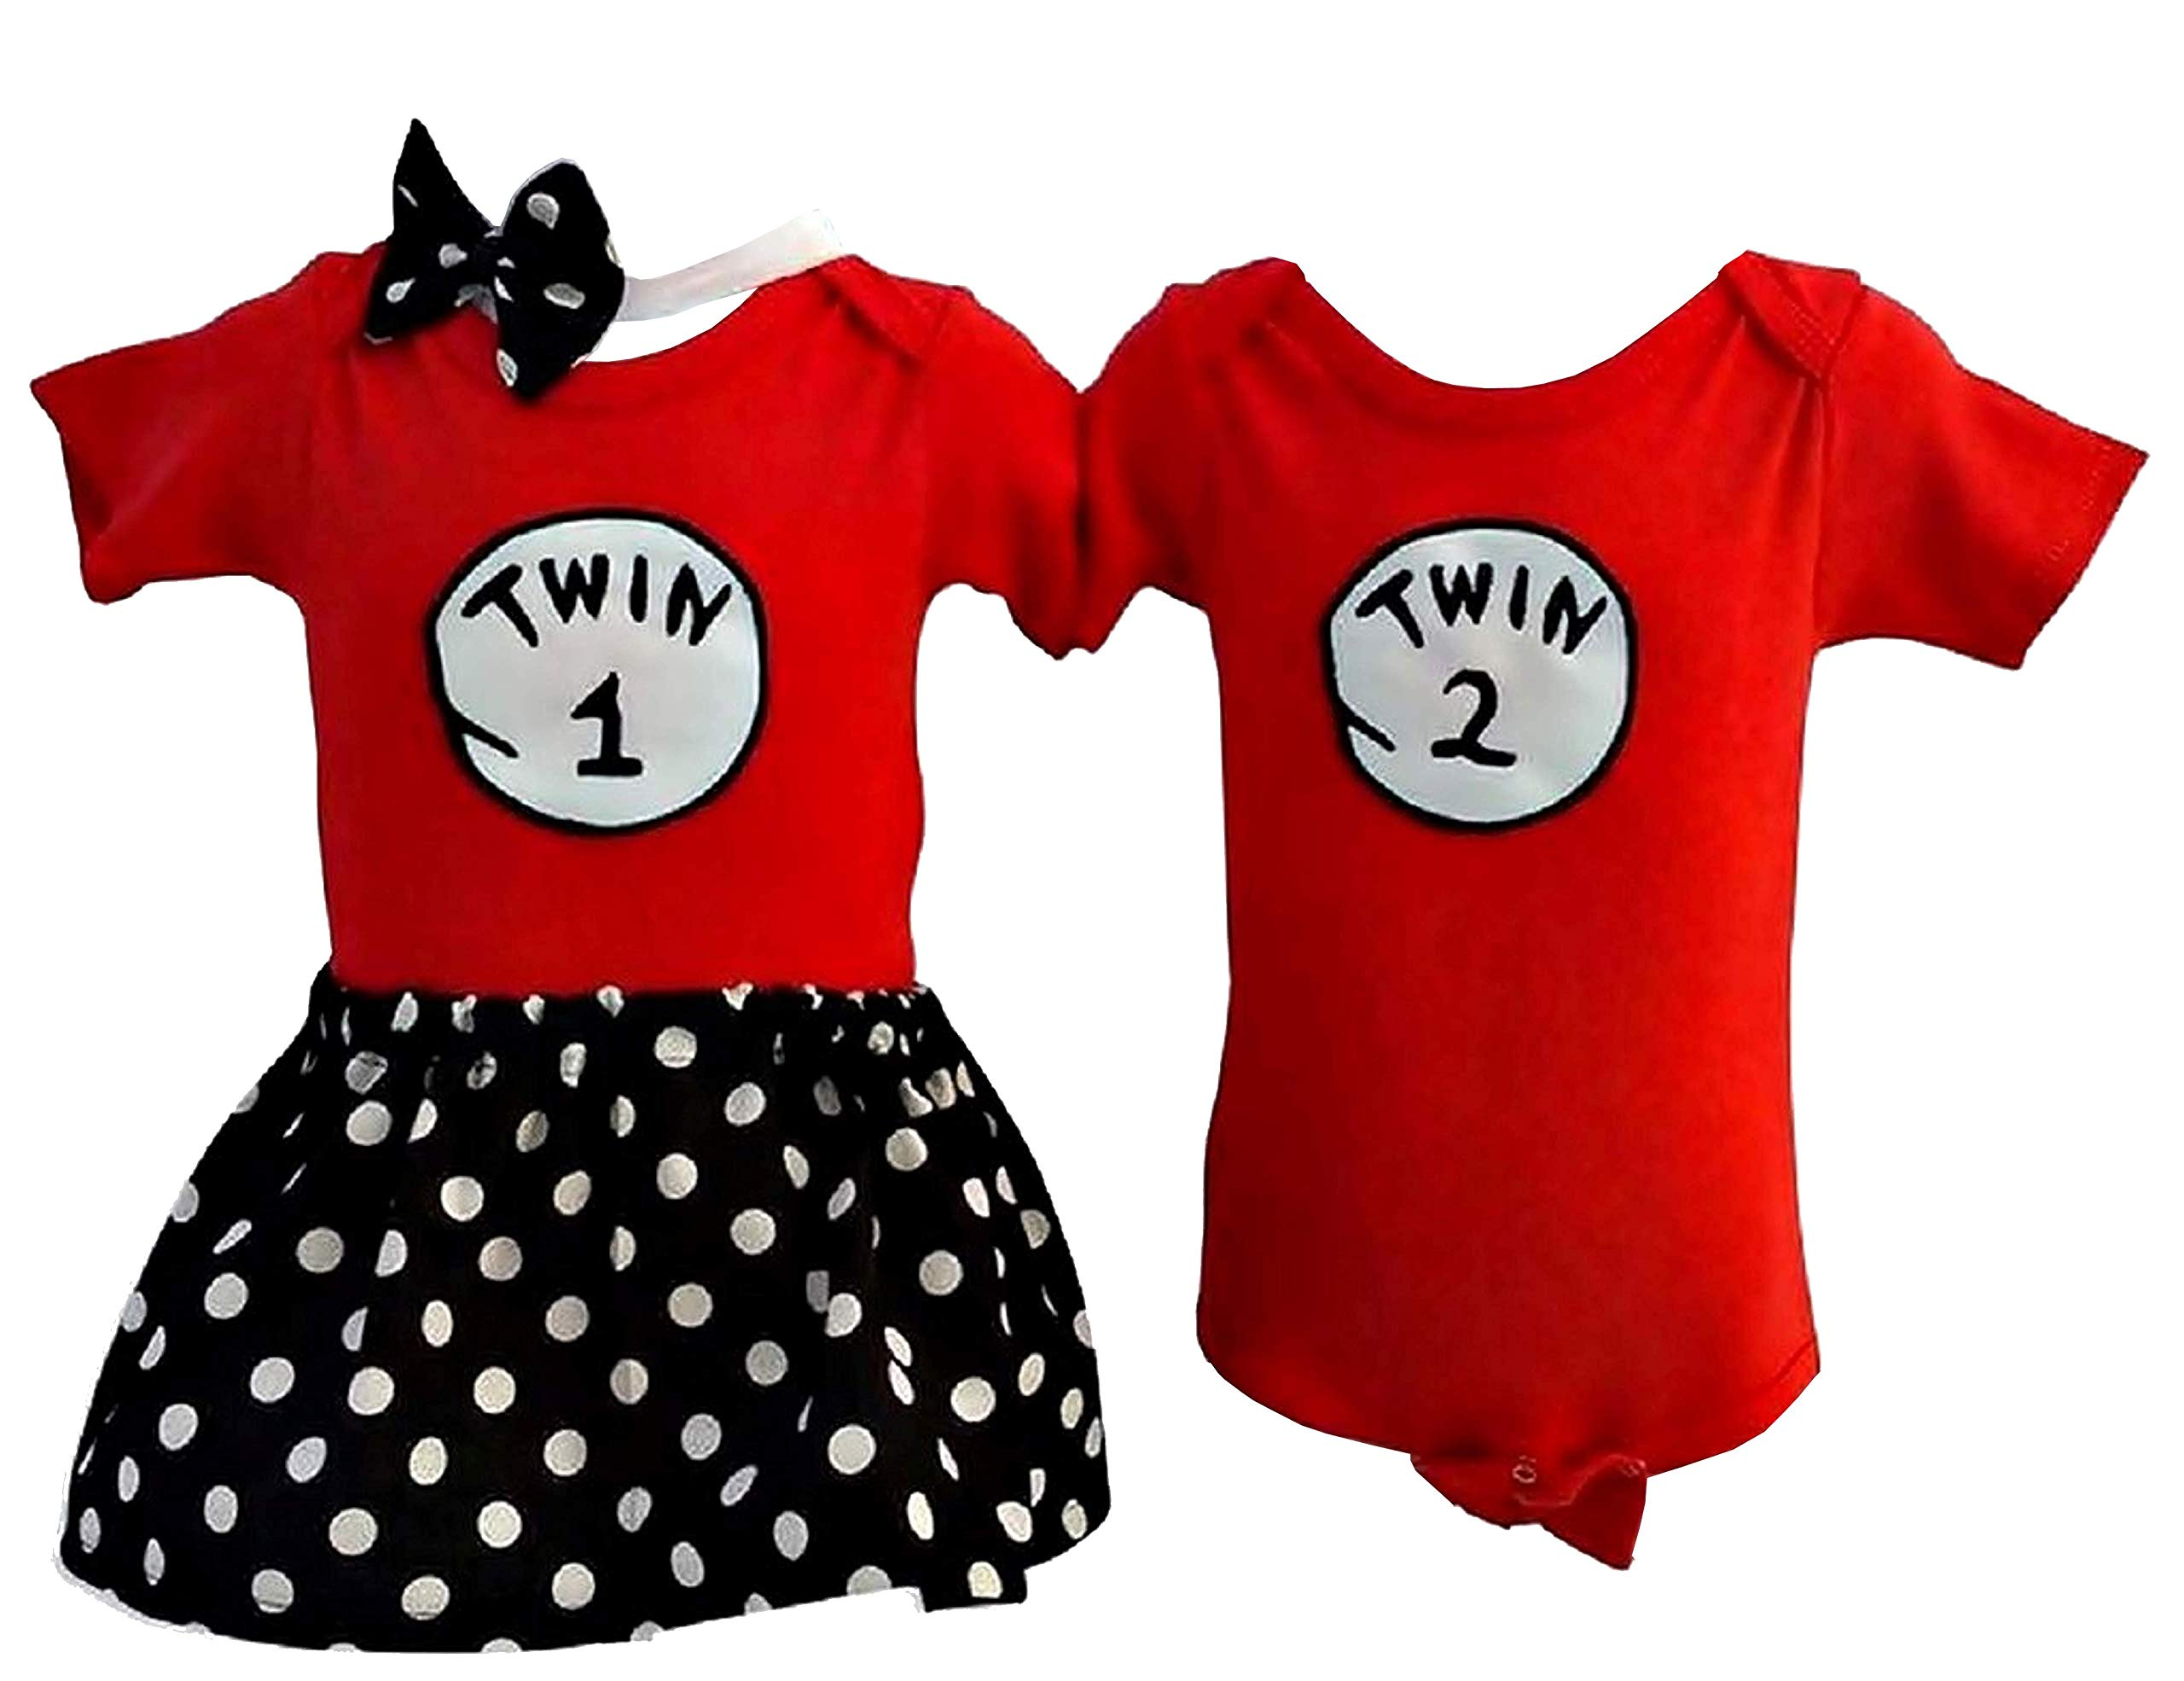 Perfect Pairz Boy Girl Twin Outfits Twin 1 Twin 2 Skirt + Headband (12M) by Perfect Pairz